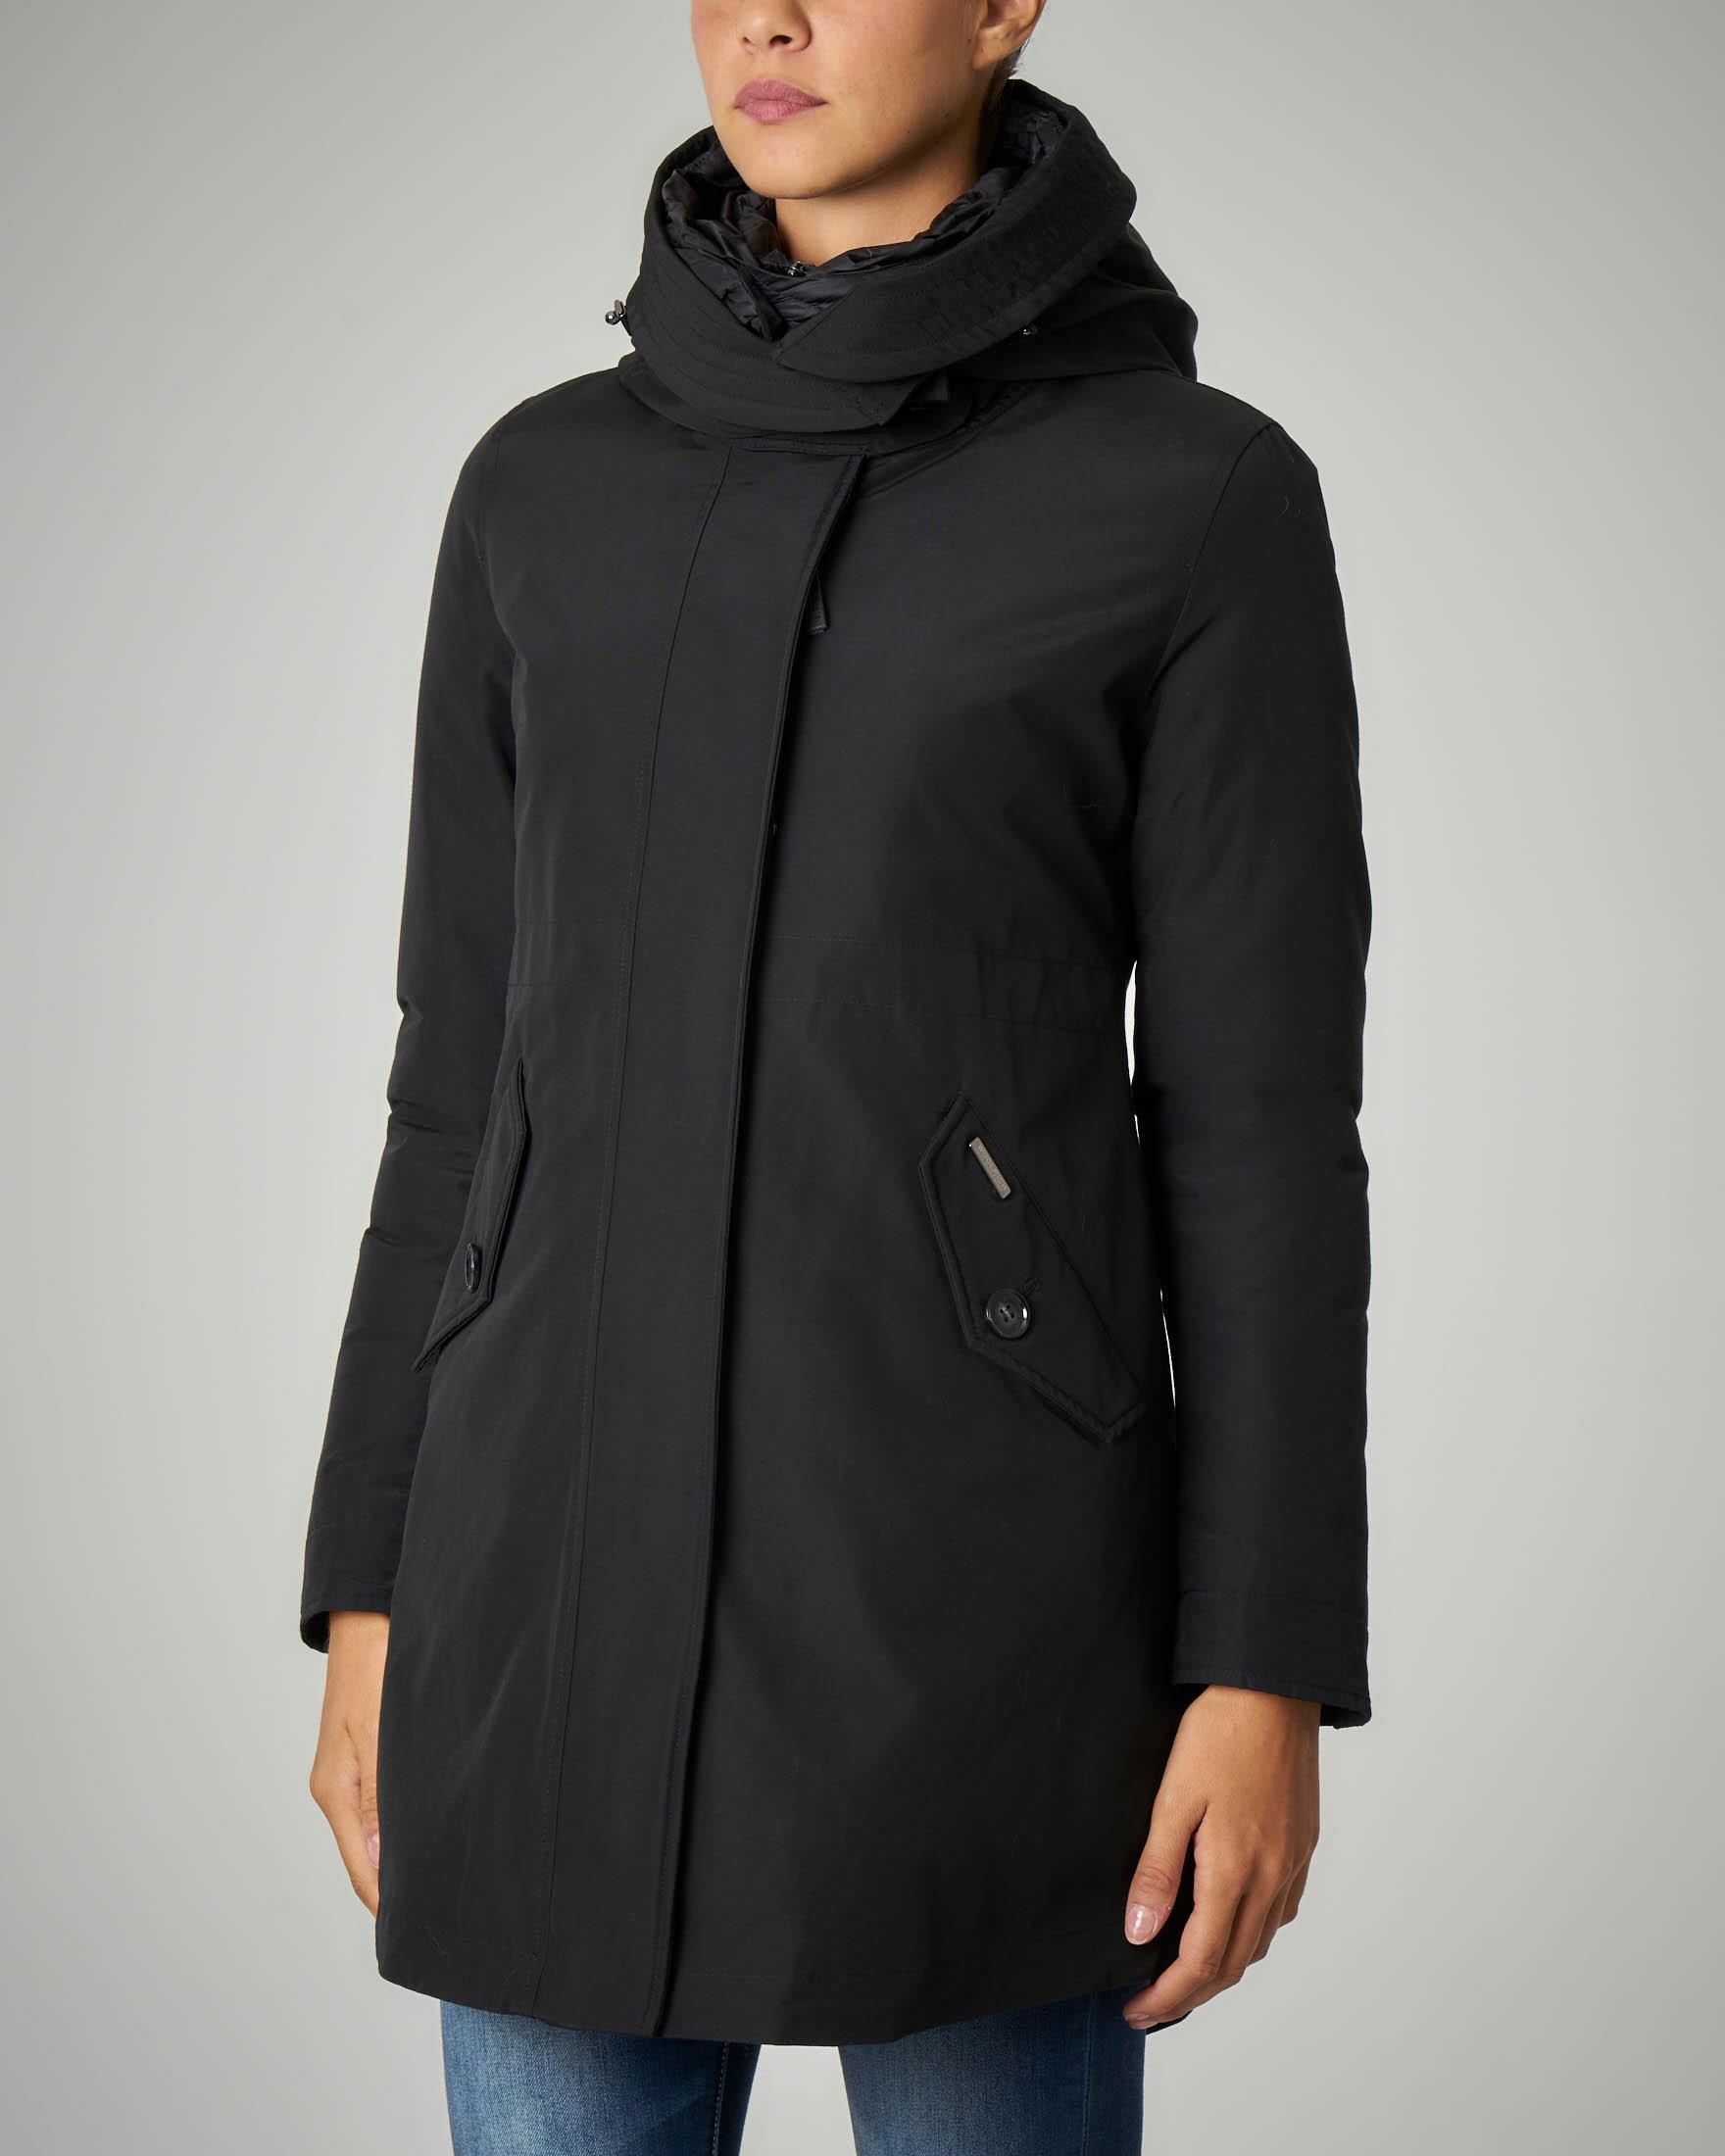 W'S Long Military Parka nero